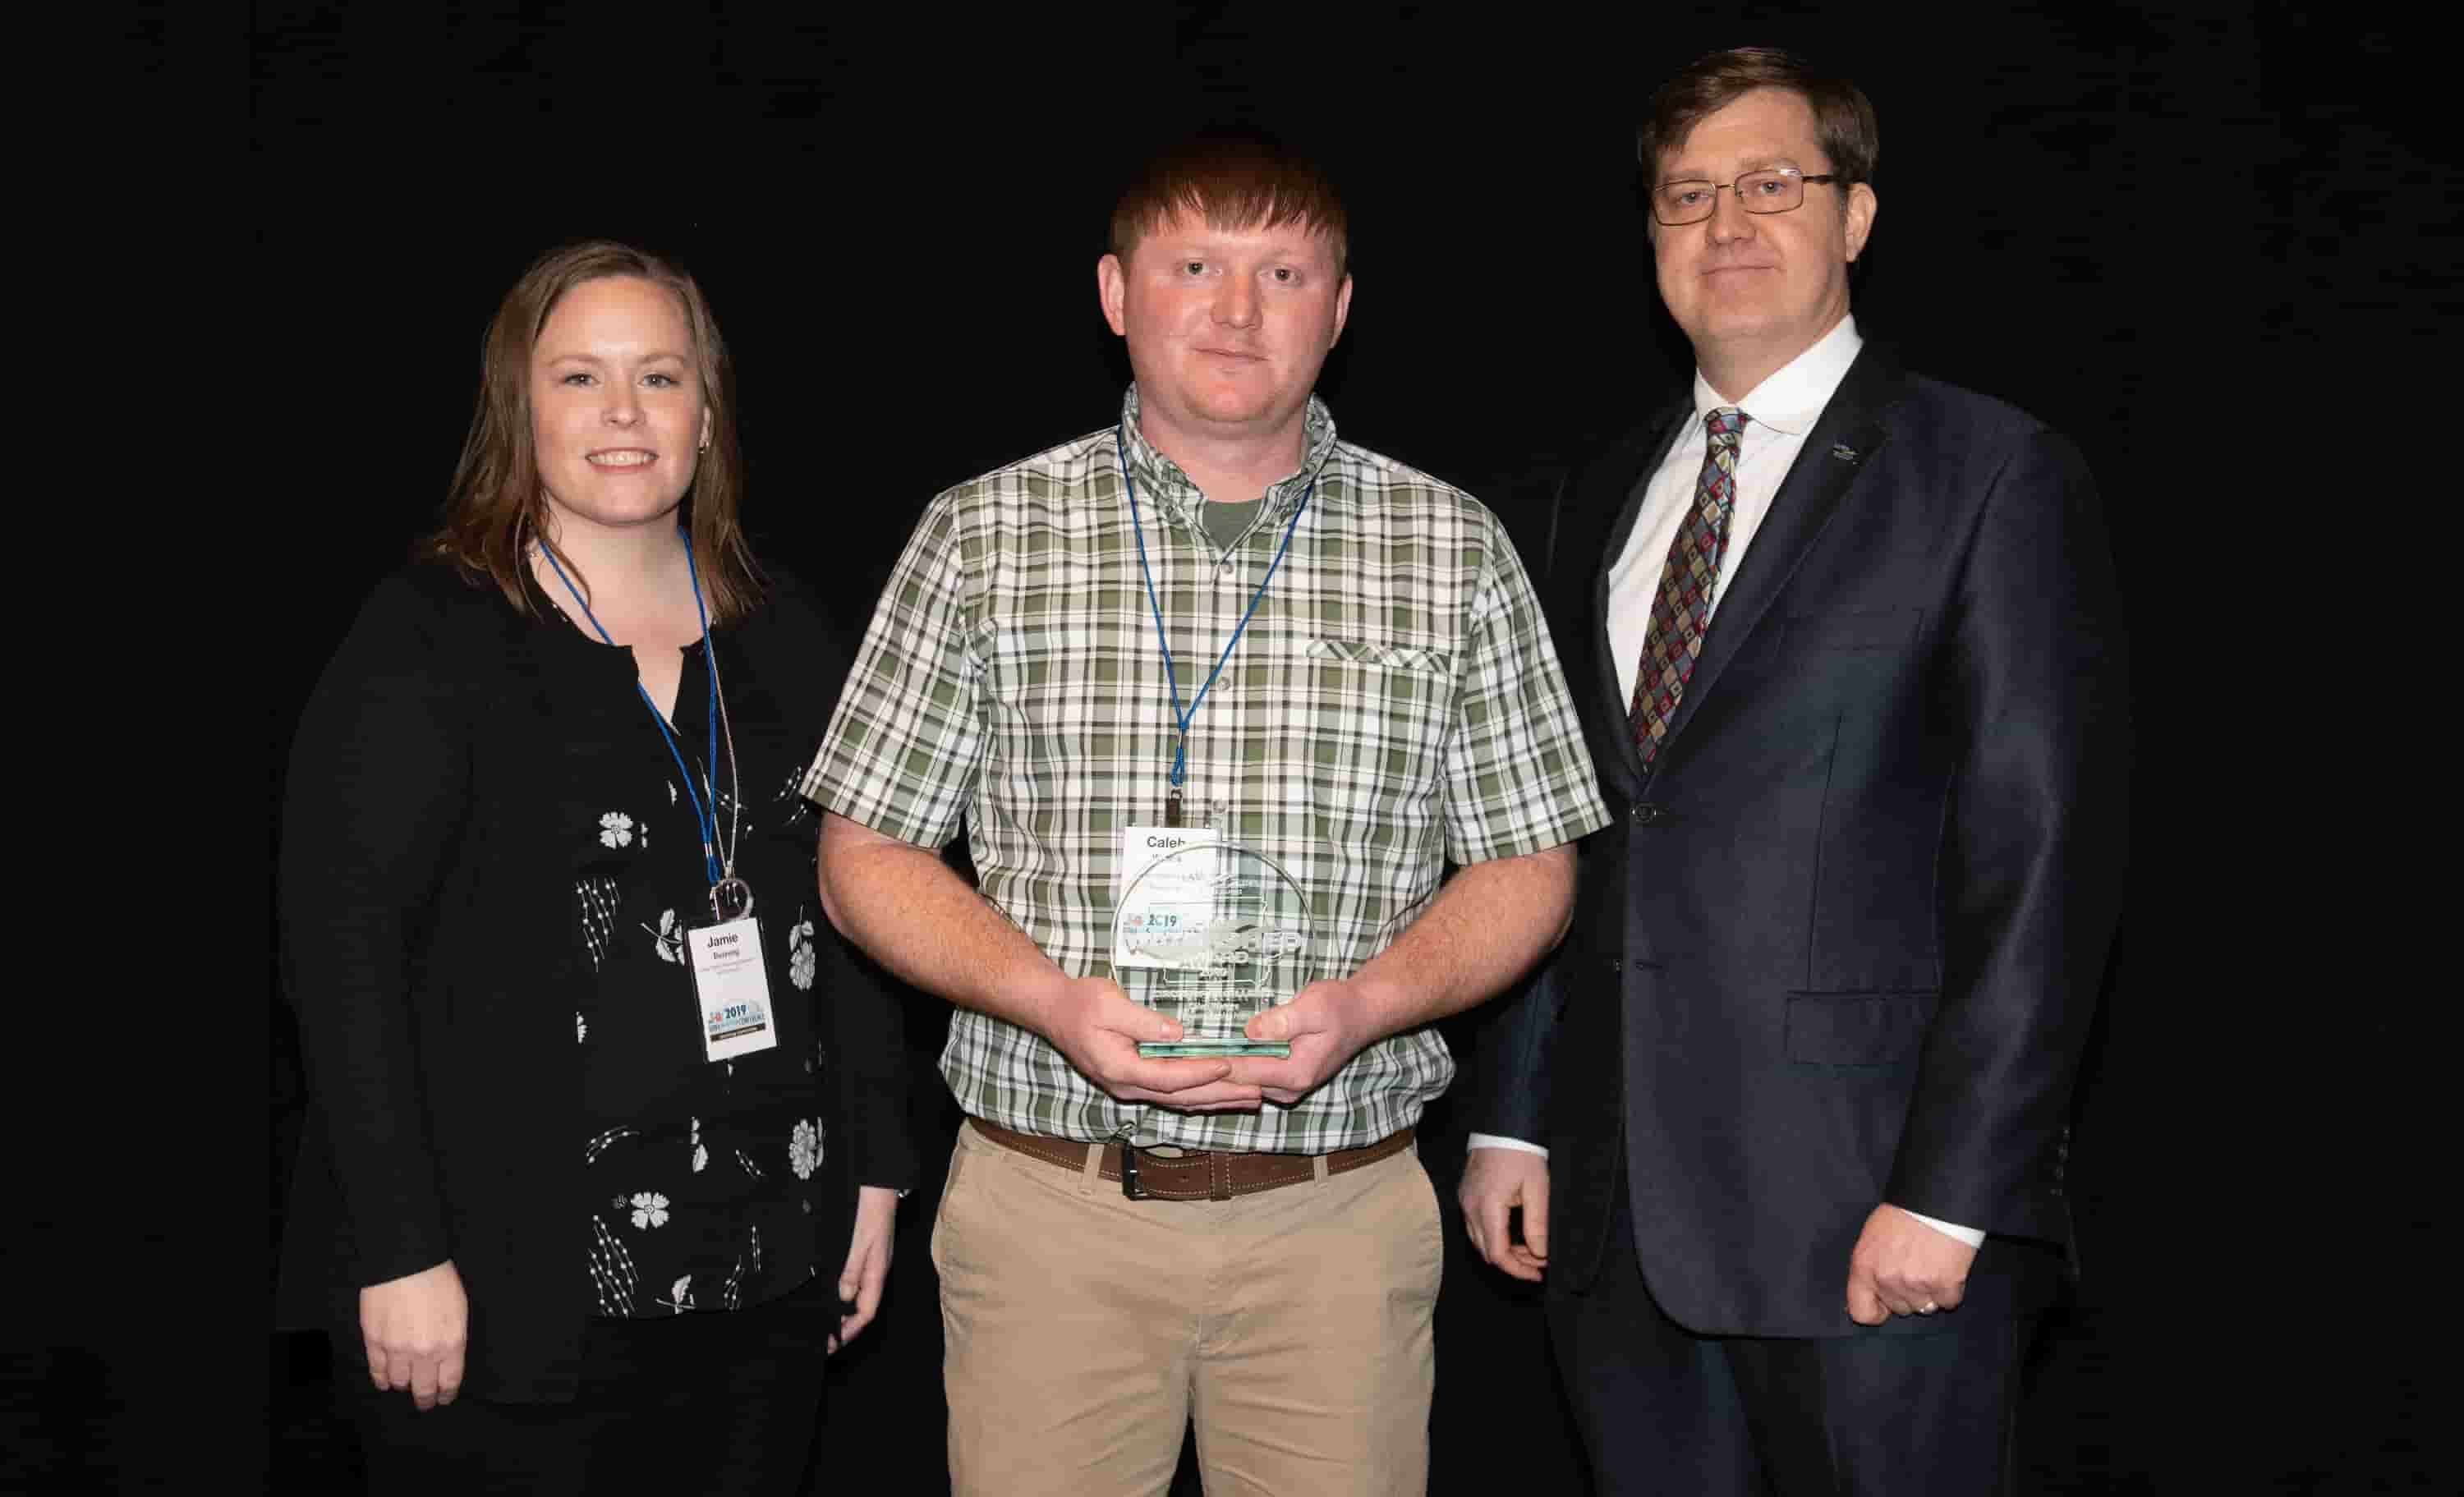 Jamie Benning with Iowa State University, Sean McMahon with Iowa Ag Water Alliance presenting Caleb Waters, watershed coordinator, with an IAWA Iowa Watershed Award